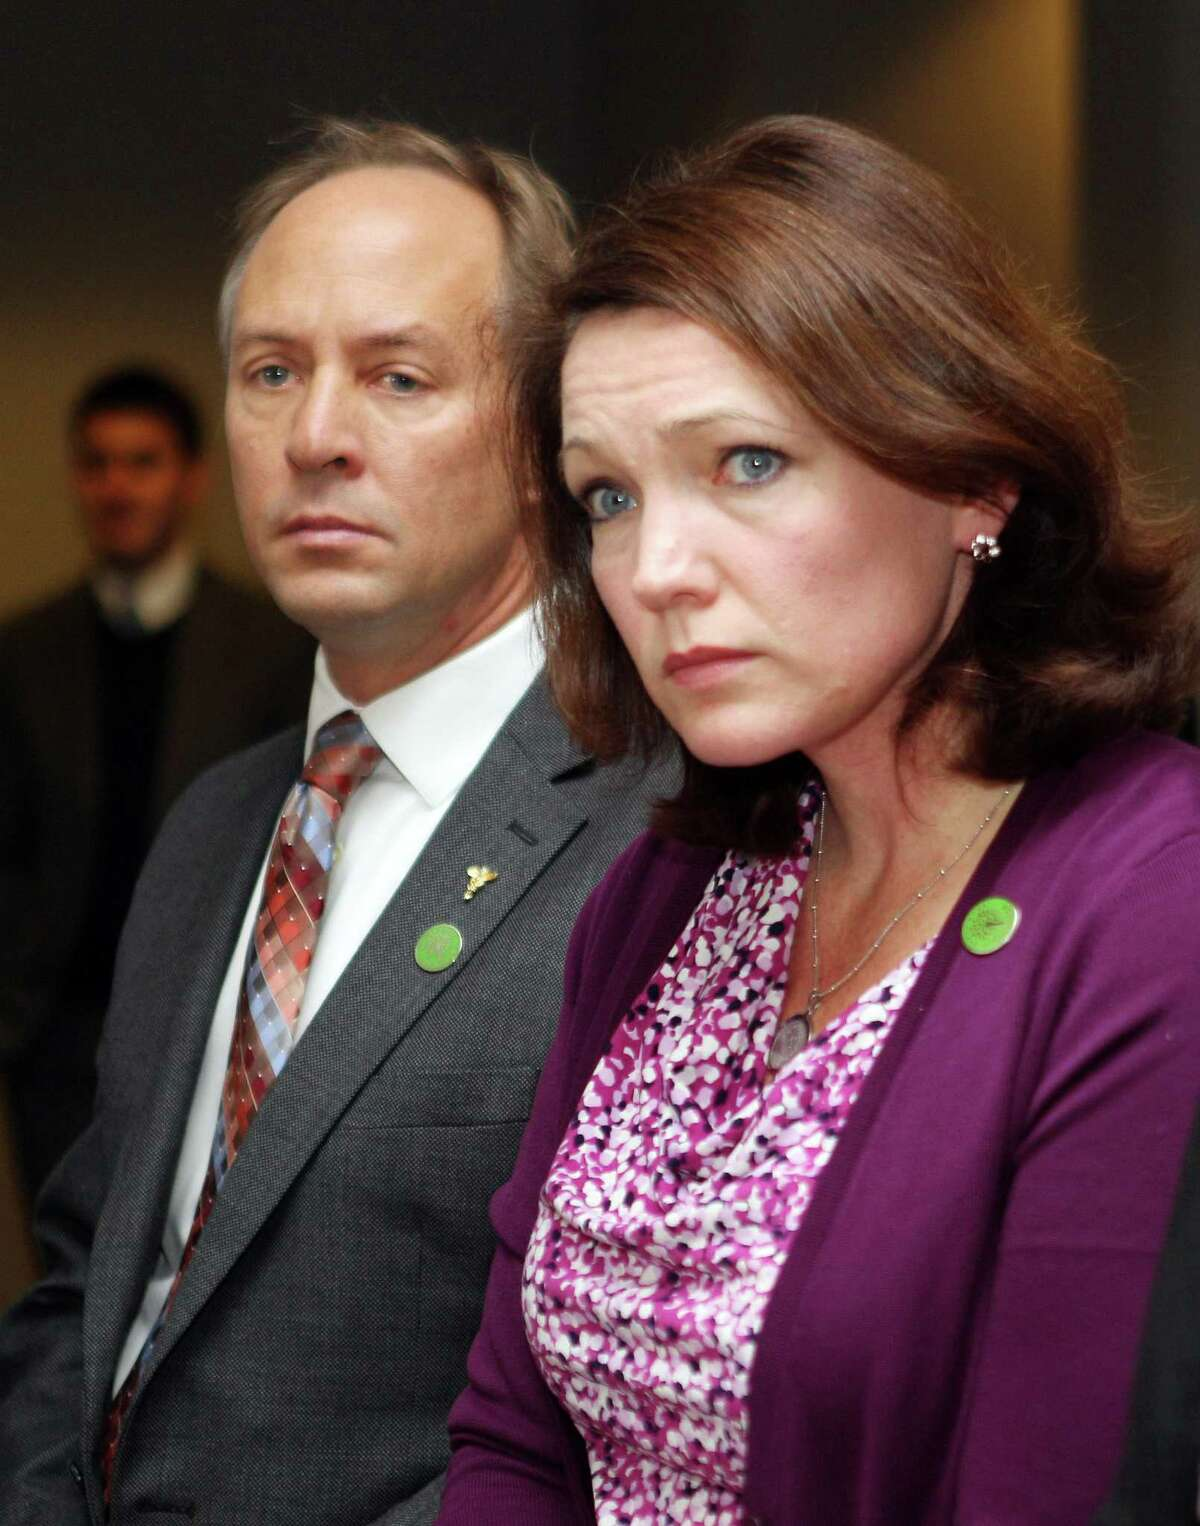 File photo: Mark Barden, who lost his son 7-year-old Daniel, and Nicole Hockley, who lost her 6-year-old son Dylan in the Sandy Hook massacre. Tuesday, Jan. 21, 2014 in Concord, N.H.